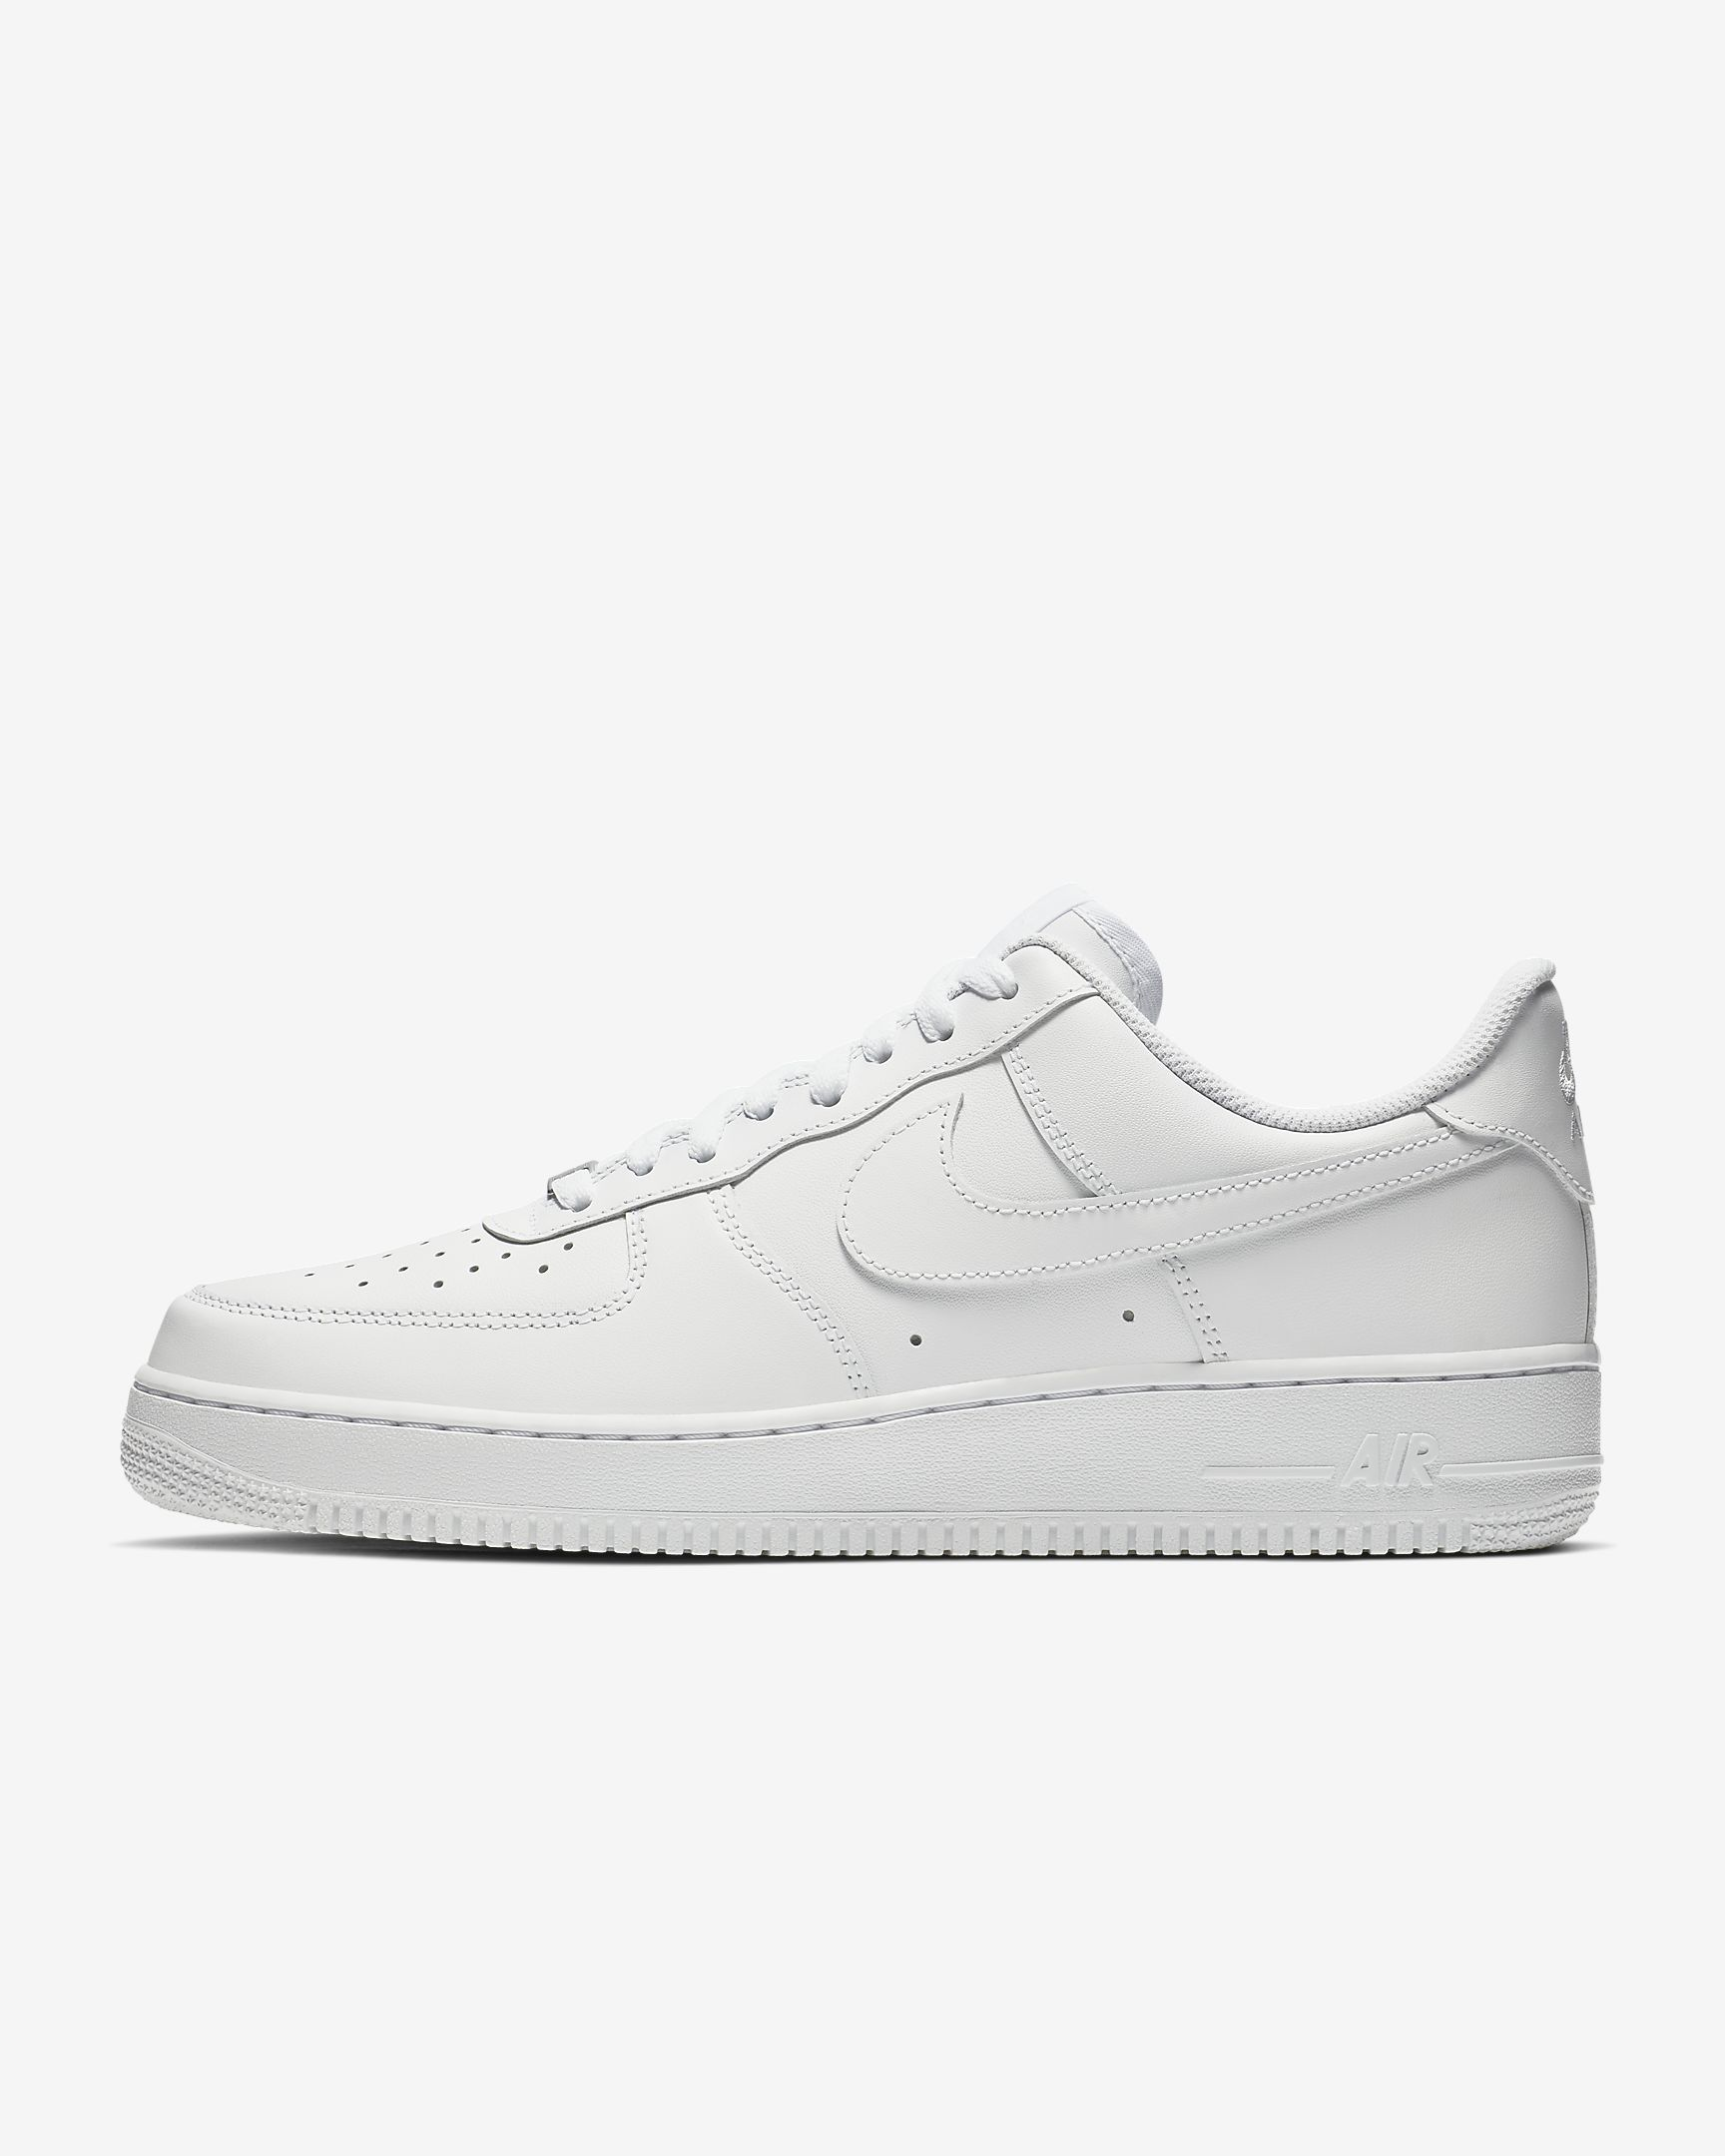 Nike Air Force 1 sneaker in white